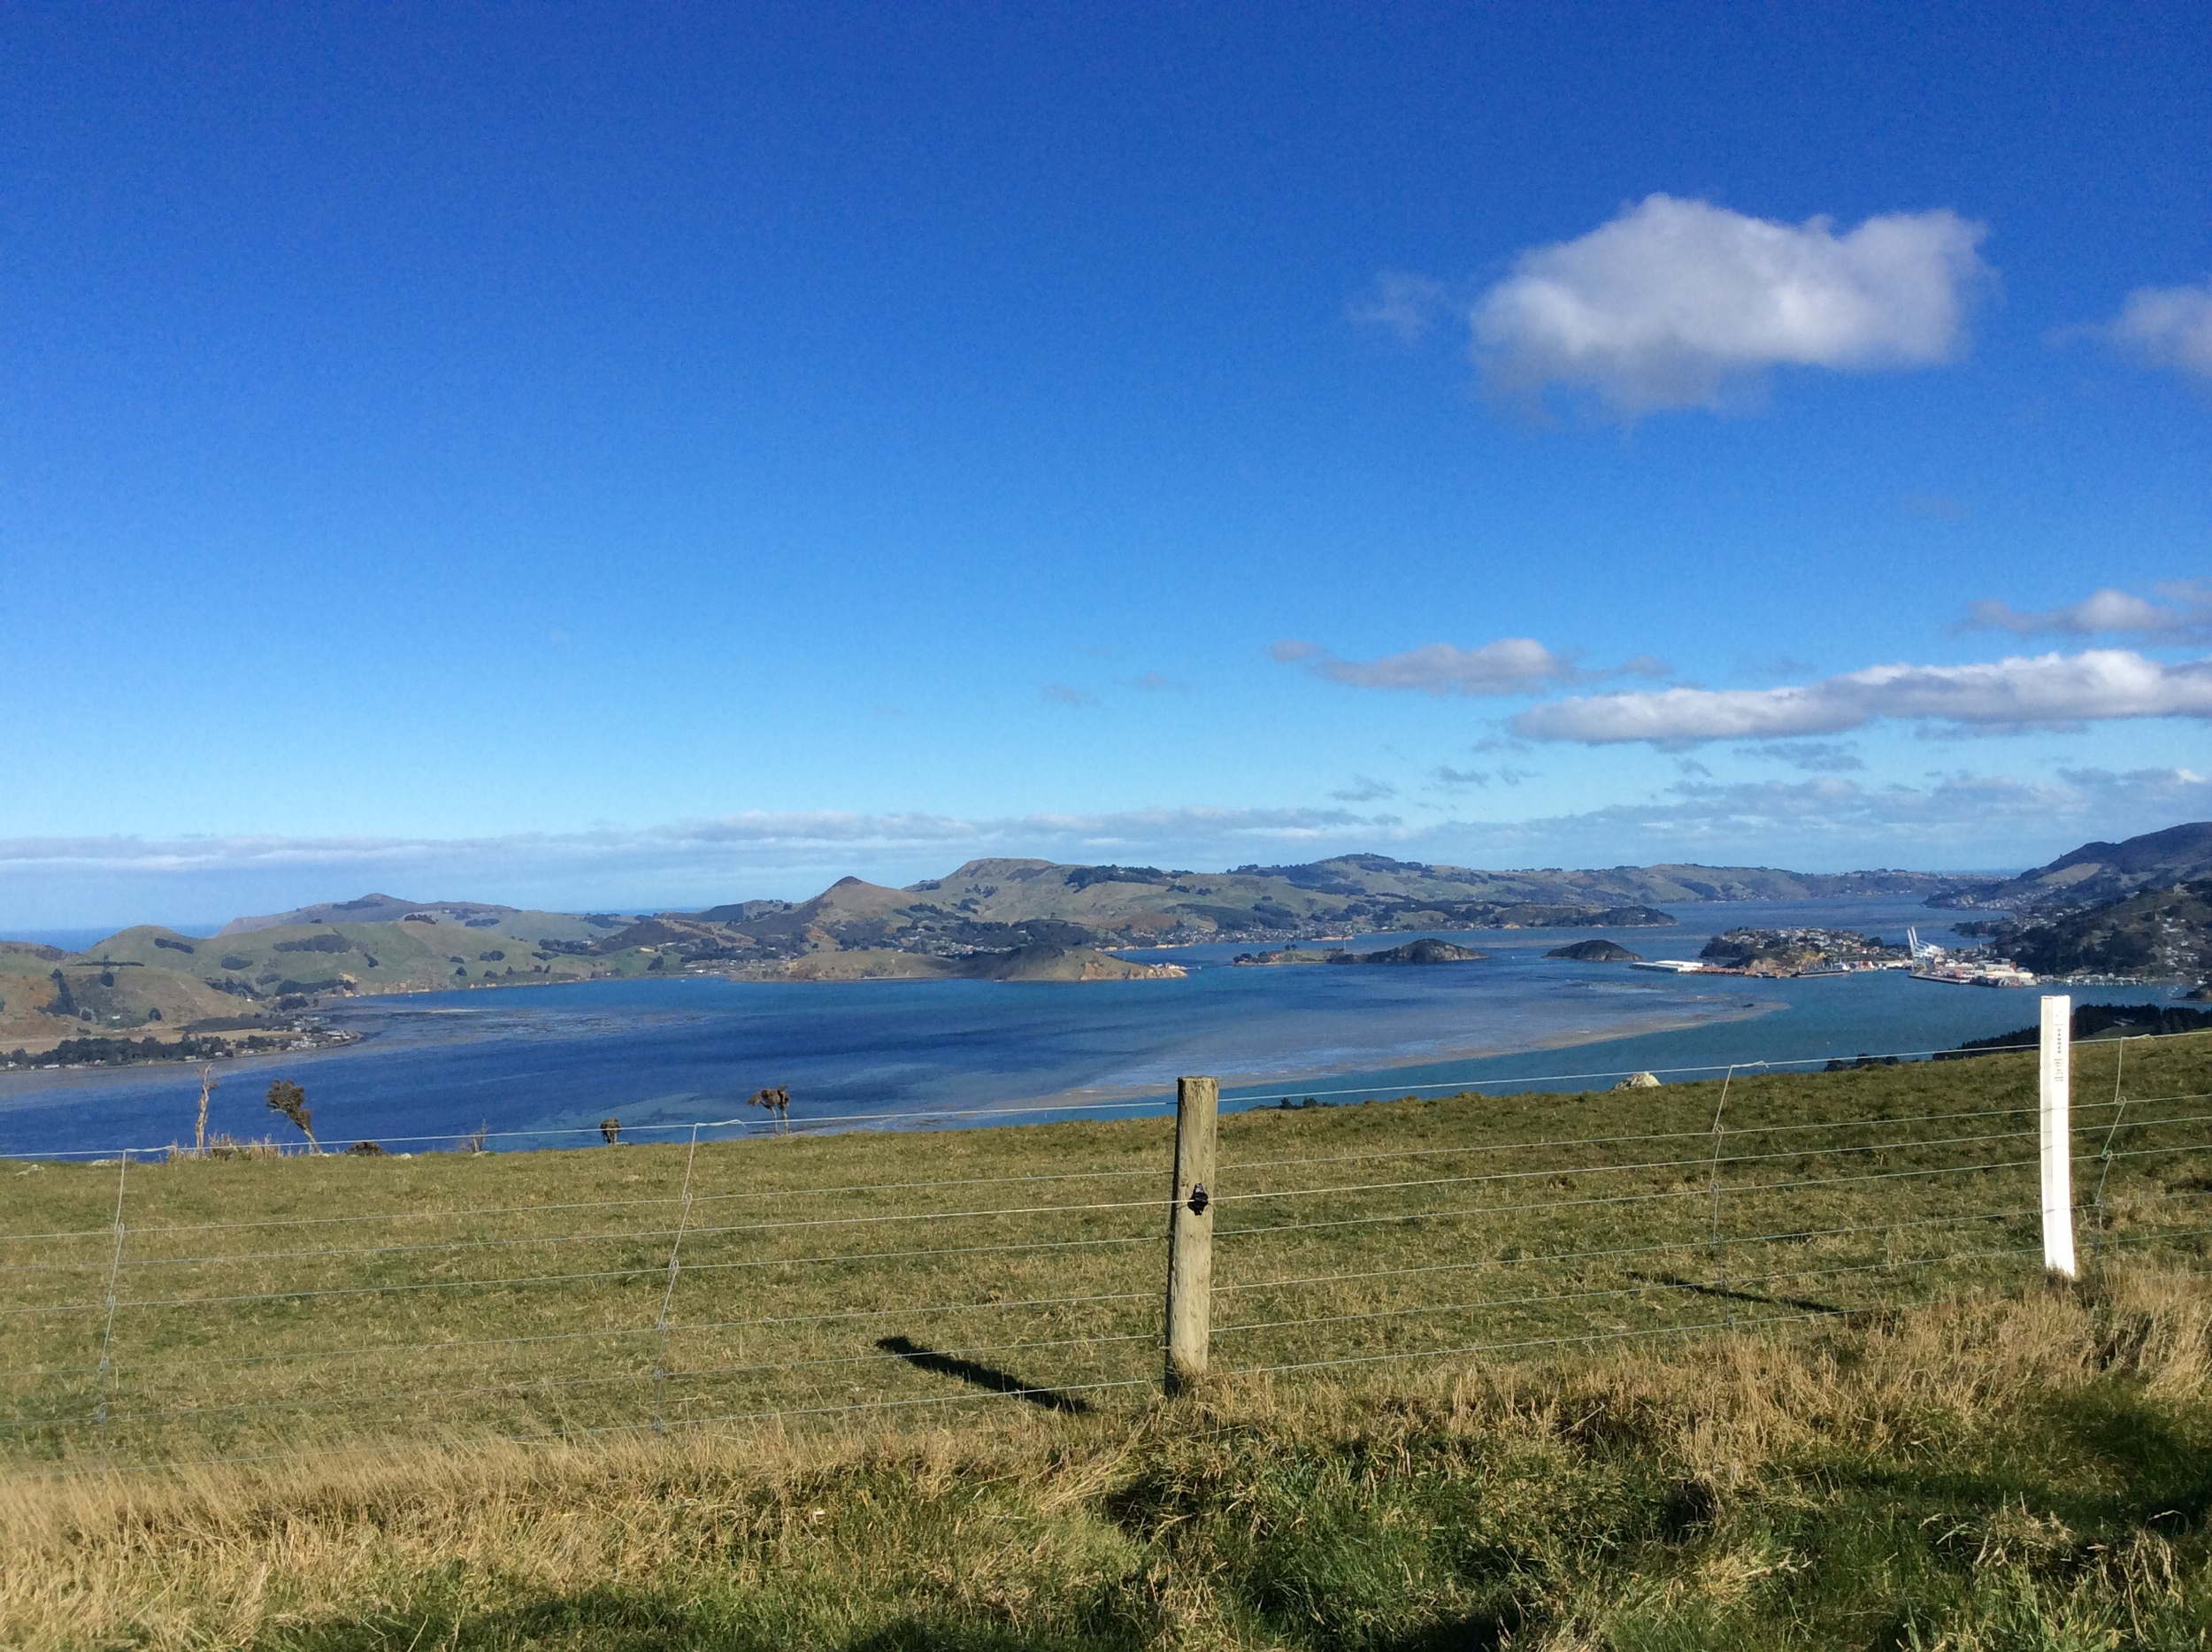 The Otago Harbour with Port Chalmers on the far right, the Otago Peninsula and the Pacific Ocean in the background